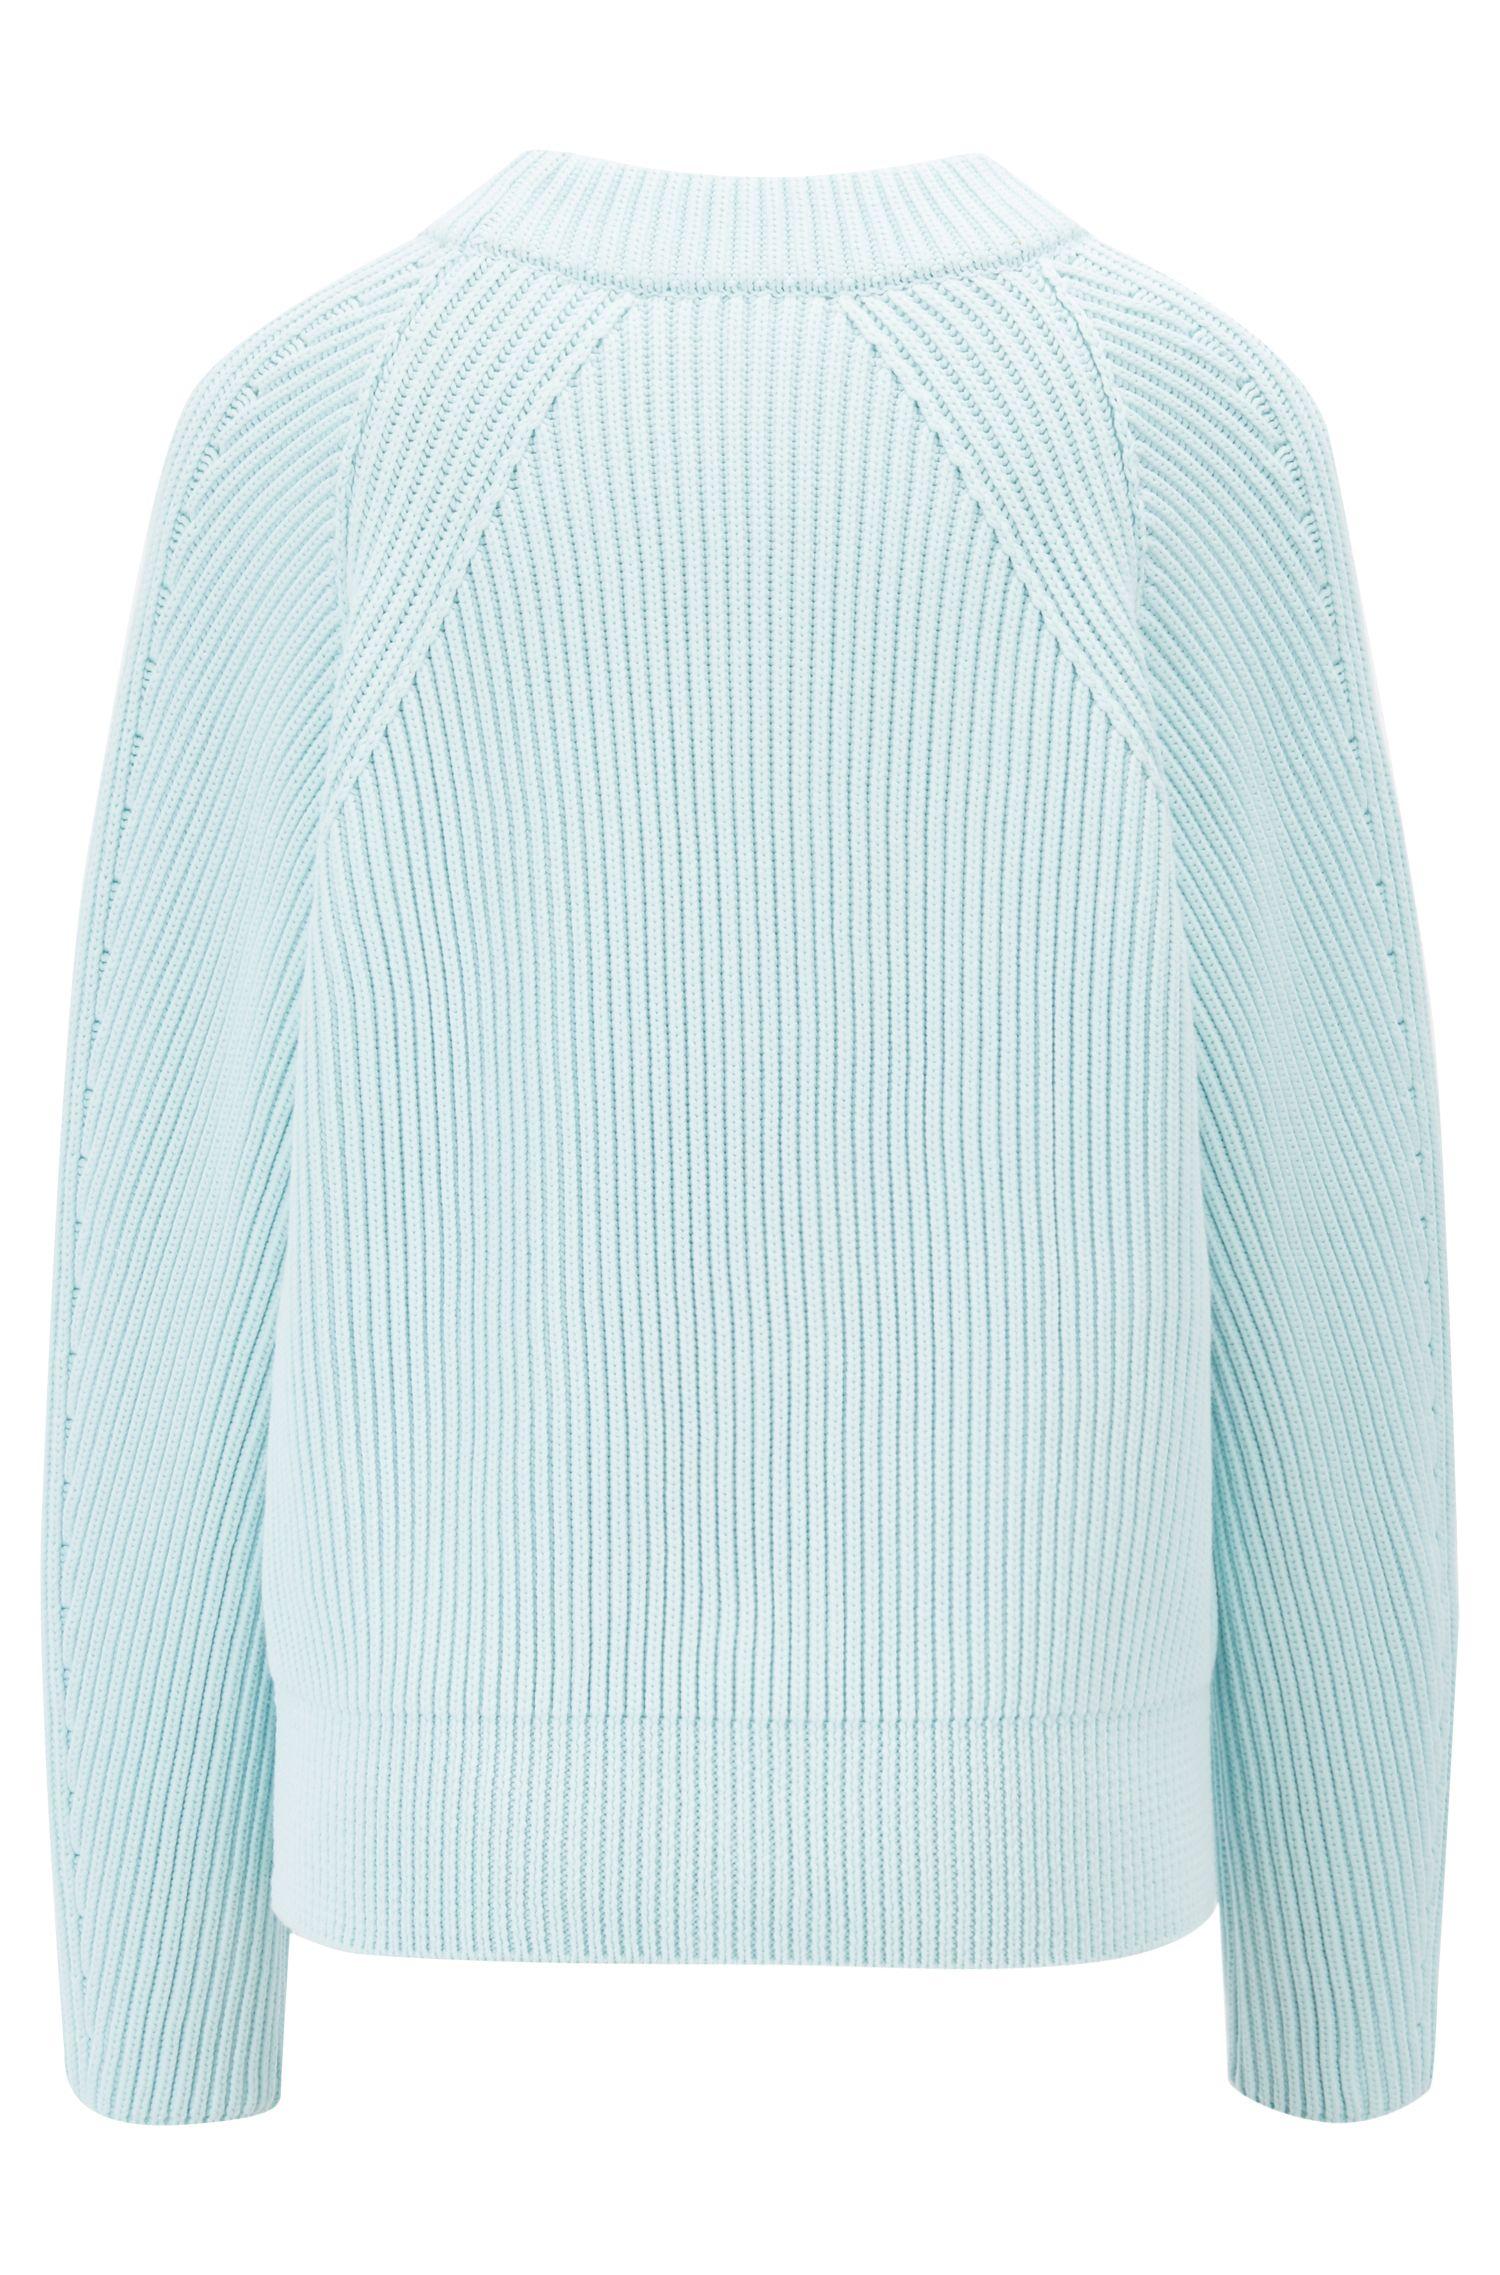 Relaxed-fit turtleneck sweater in a knitted cotton blend, Light Blue